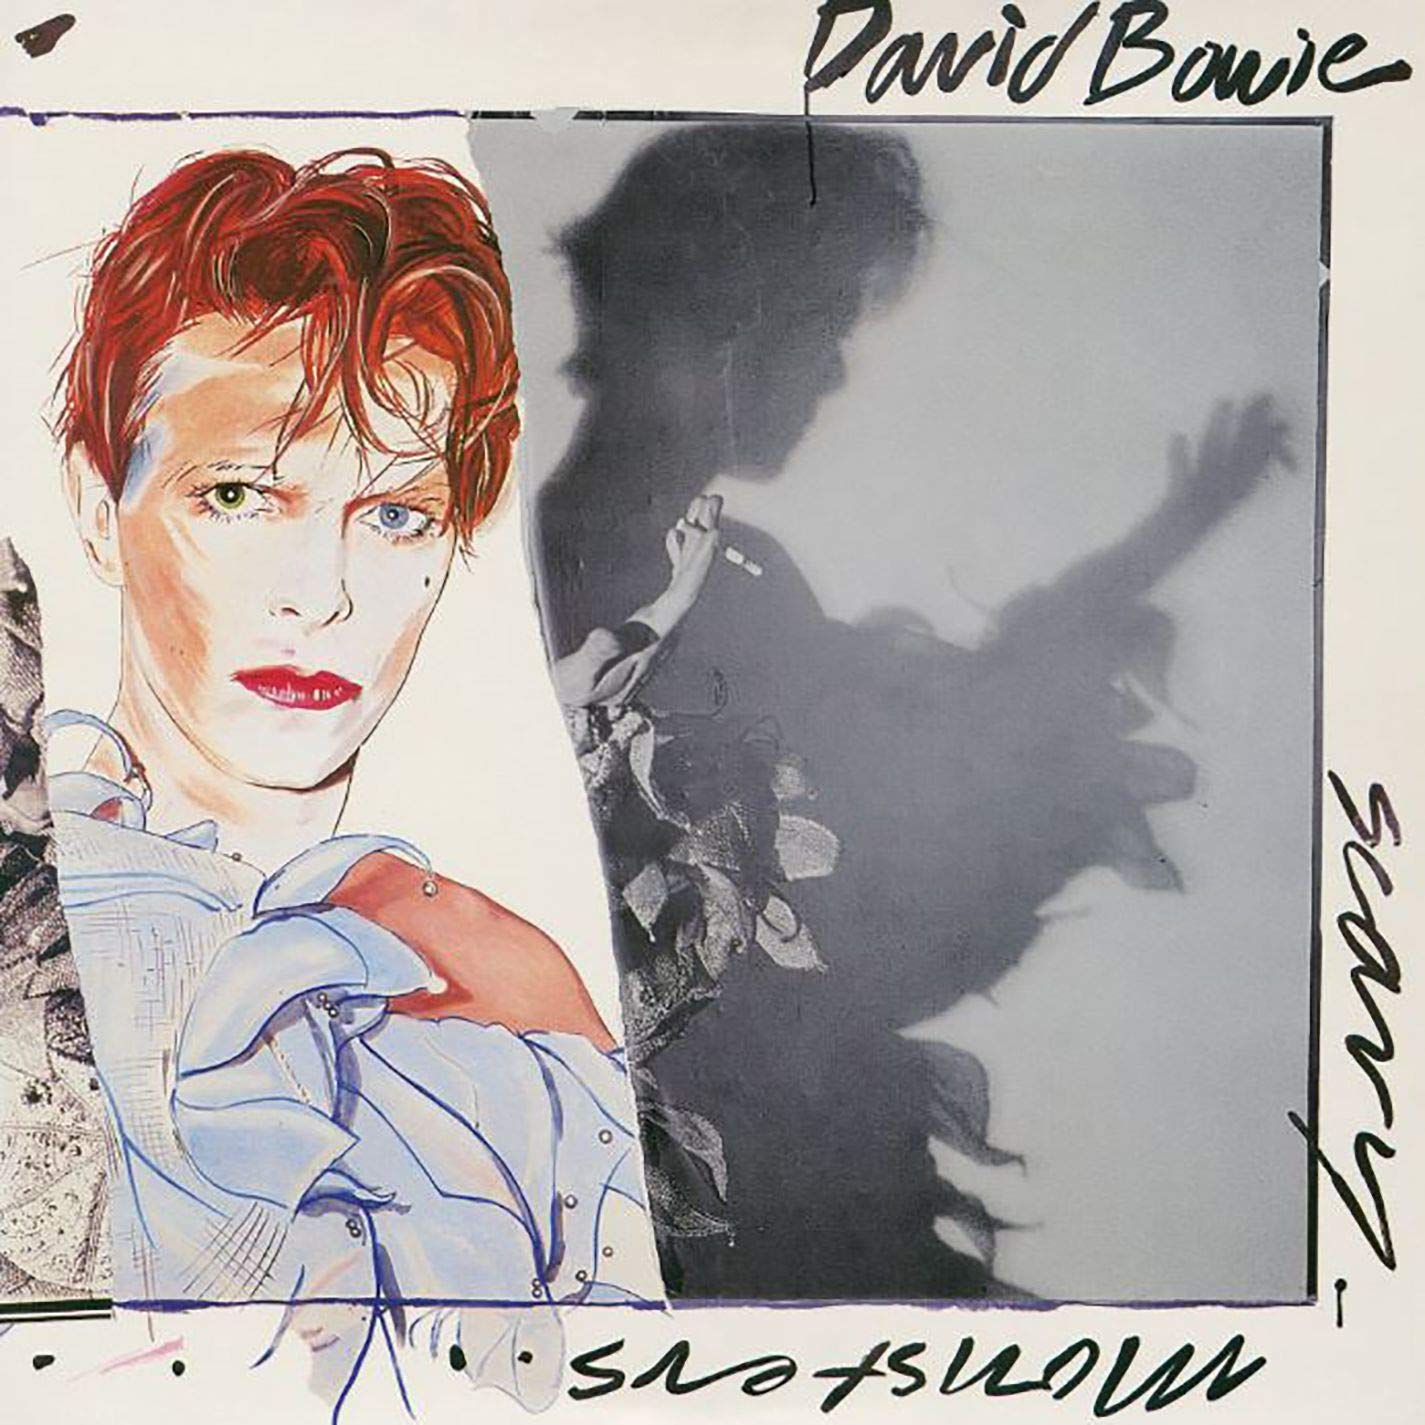 Amazon.com: Scary Monsters (And Super Creeps) (2017 Remastered Version):  Music